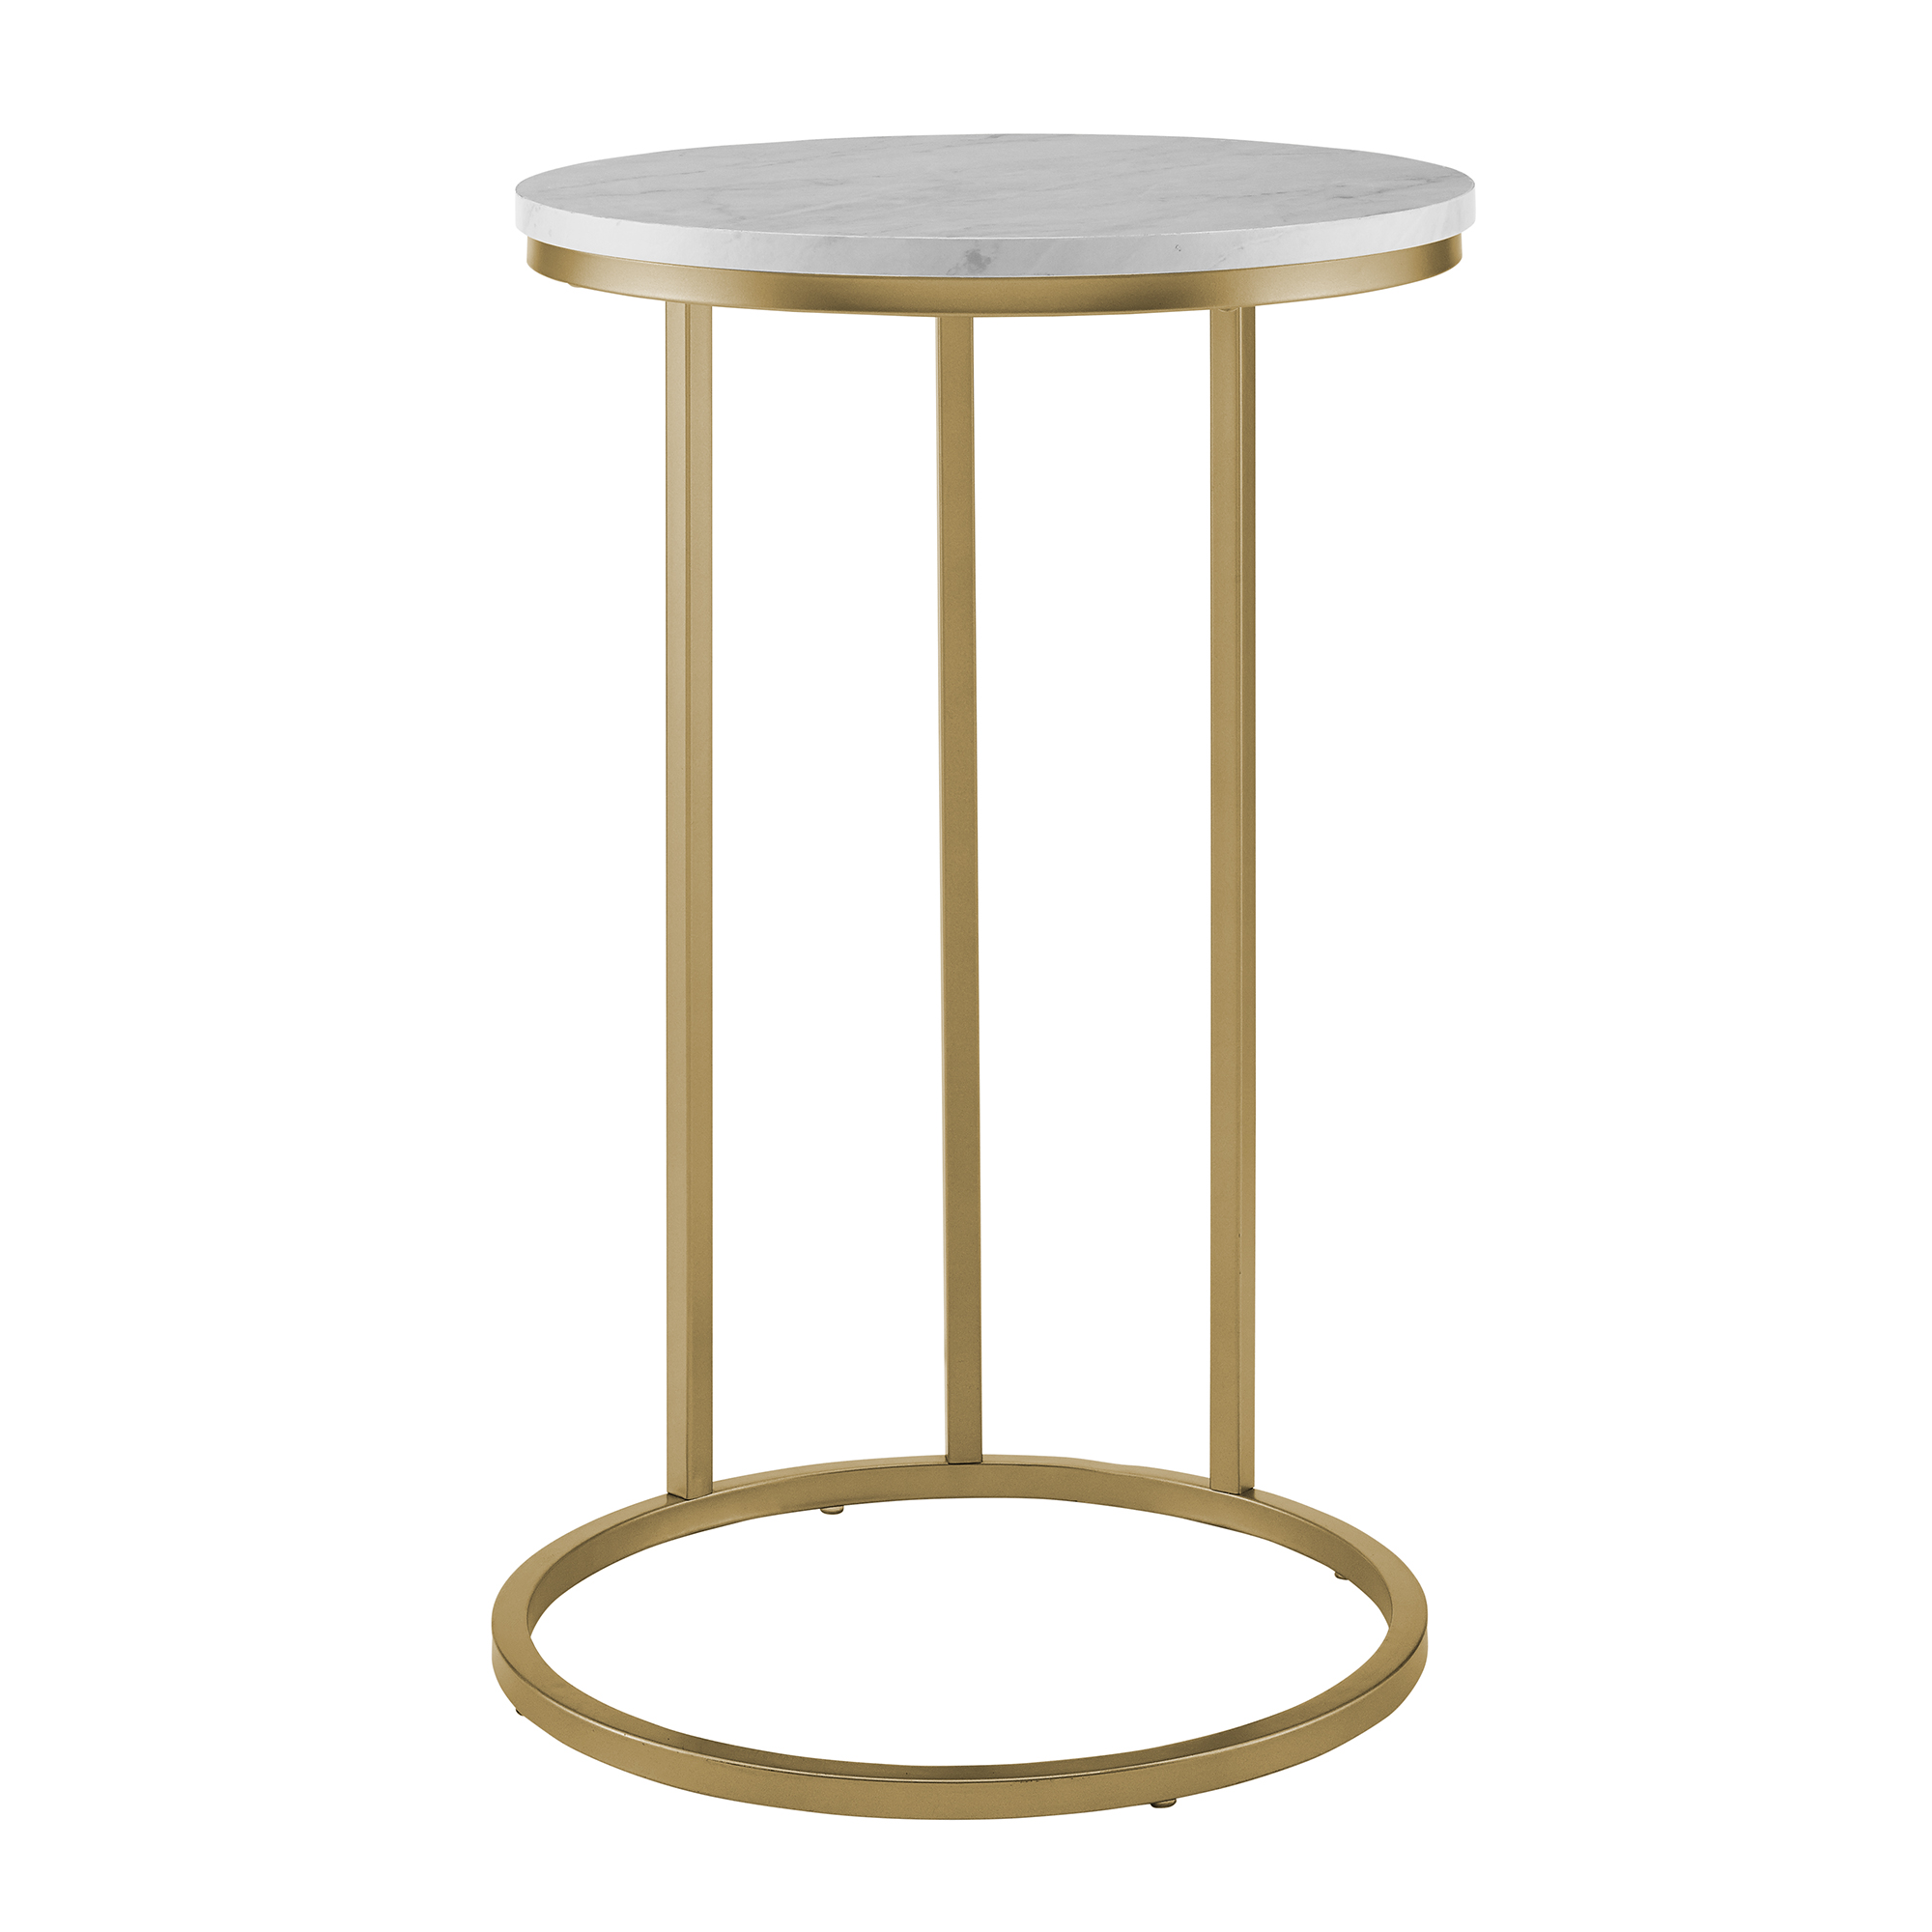 manor park modern round end table white marble top gold base accent nursery small bedside lamps target office furniture barnwood kitchen oak dining set pottery barn high bar